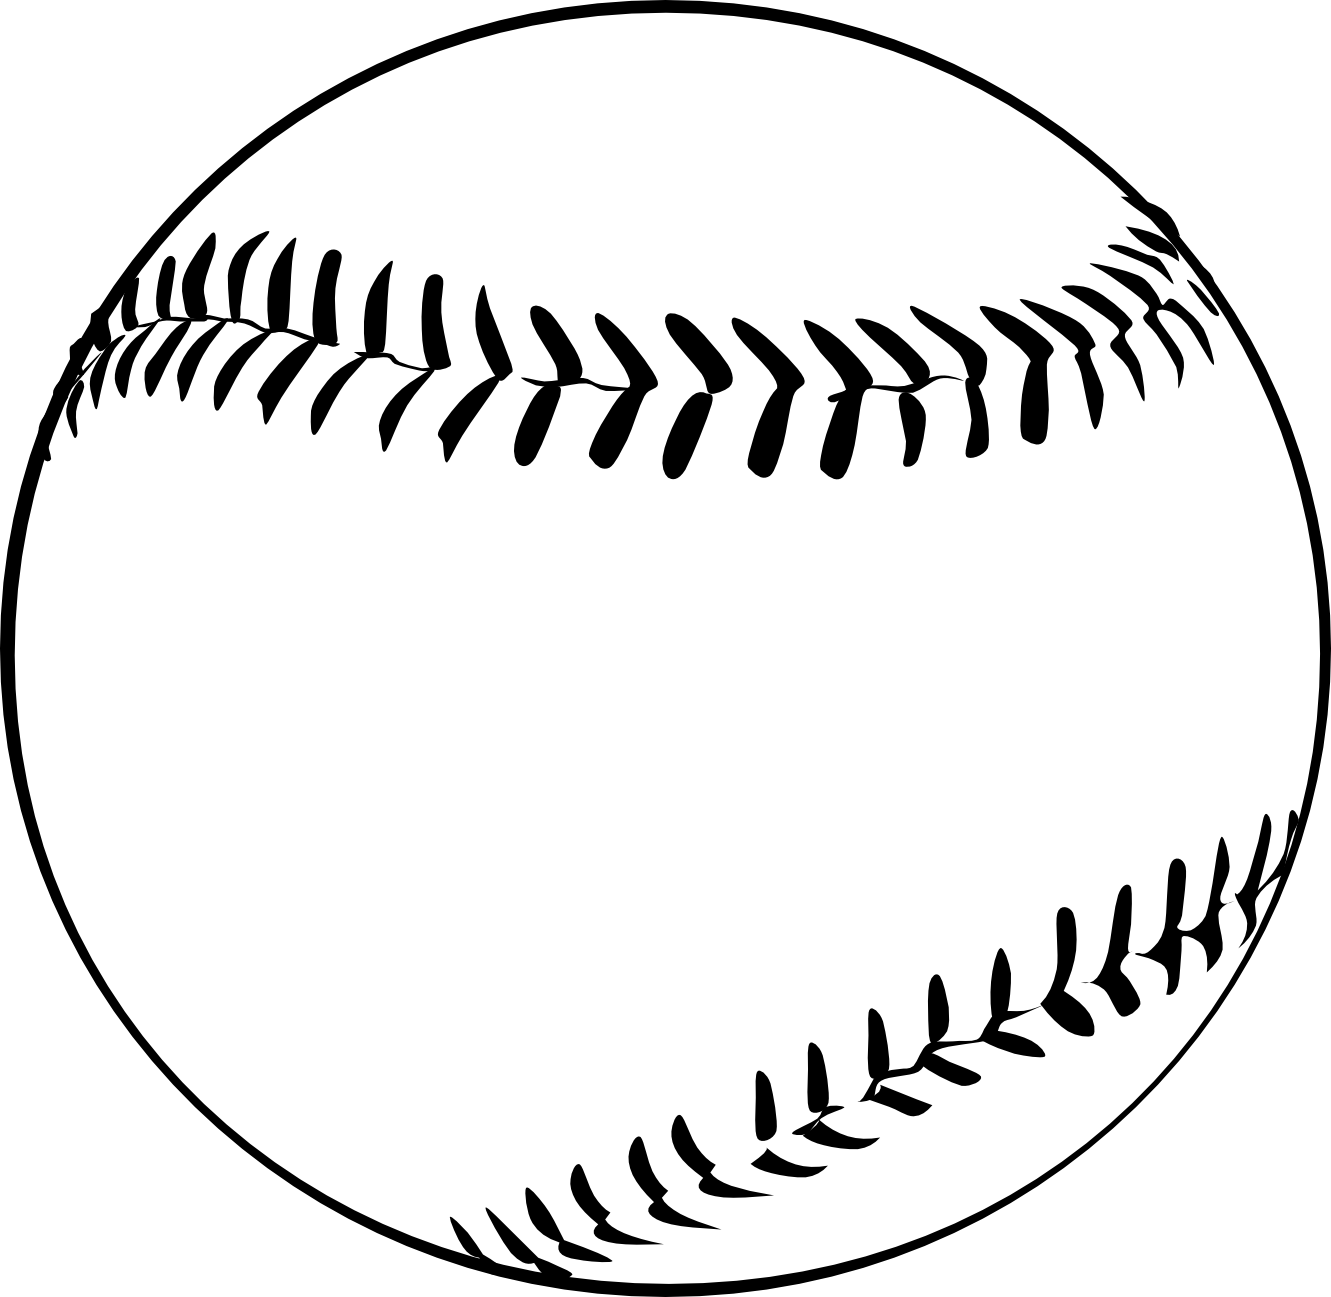 Free clipart images for baseball svg royalty free download Baseball Clipart Black And White | Letters Format svg royalty free download